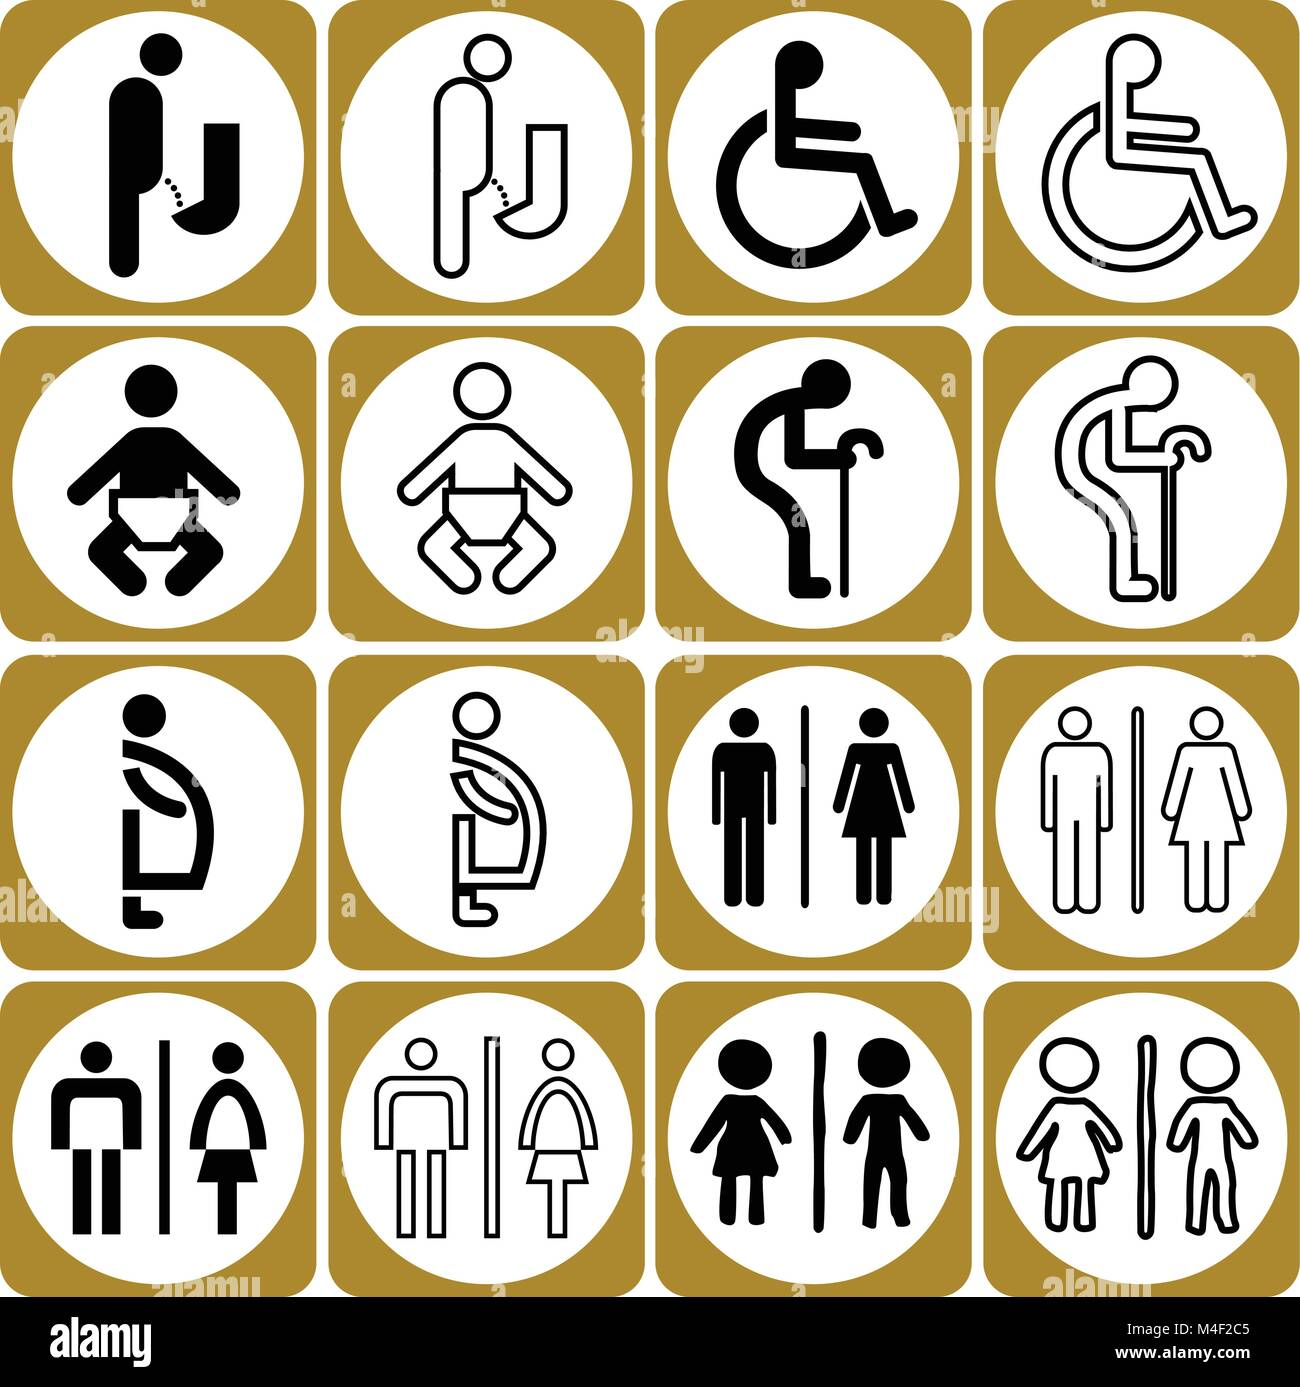 Modern Style Of Golden Toilet Sign With Baby Men Women Pregnant Aged Handicapped In Art Design Vector Set